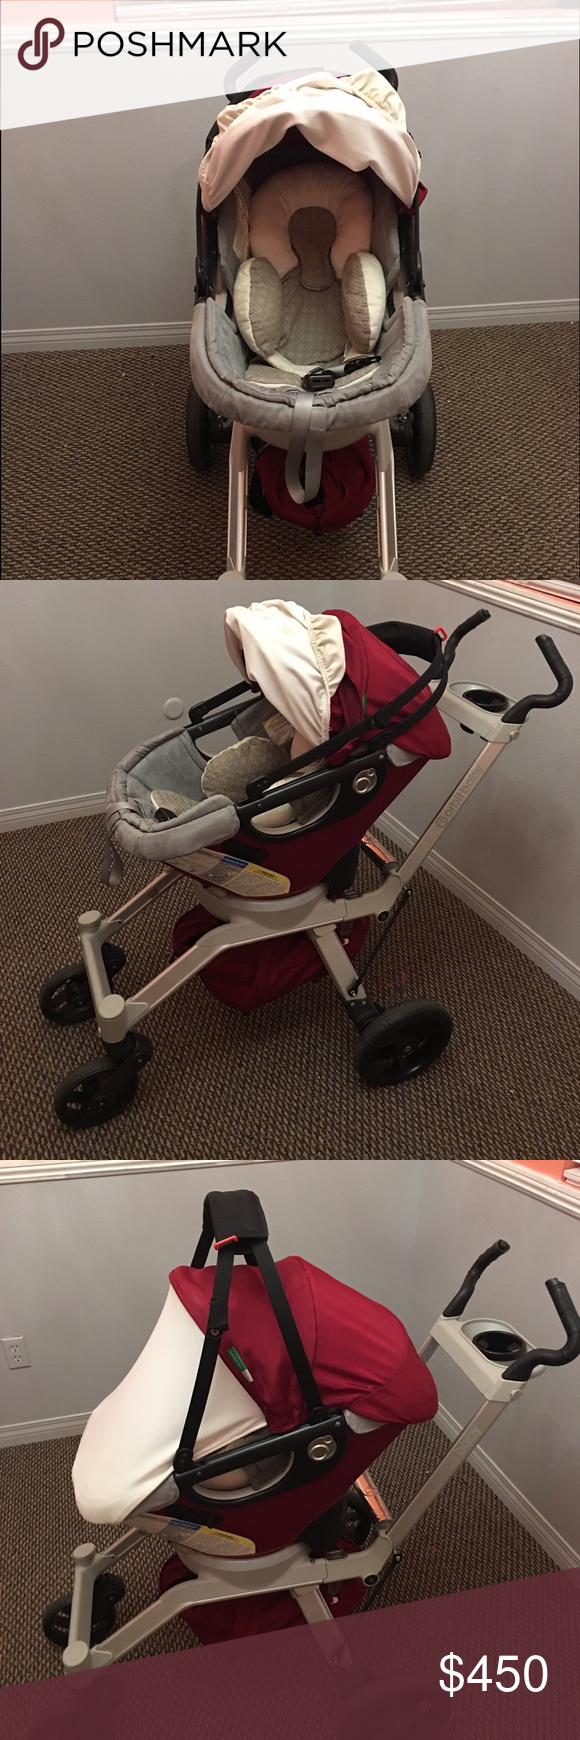 Orbit stroller G2 Good condition stroller frame and car